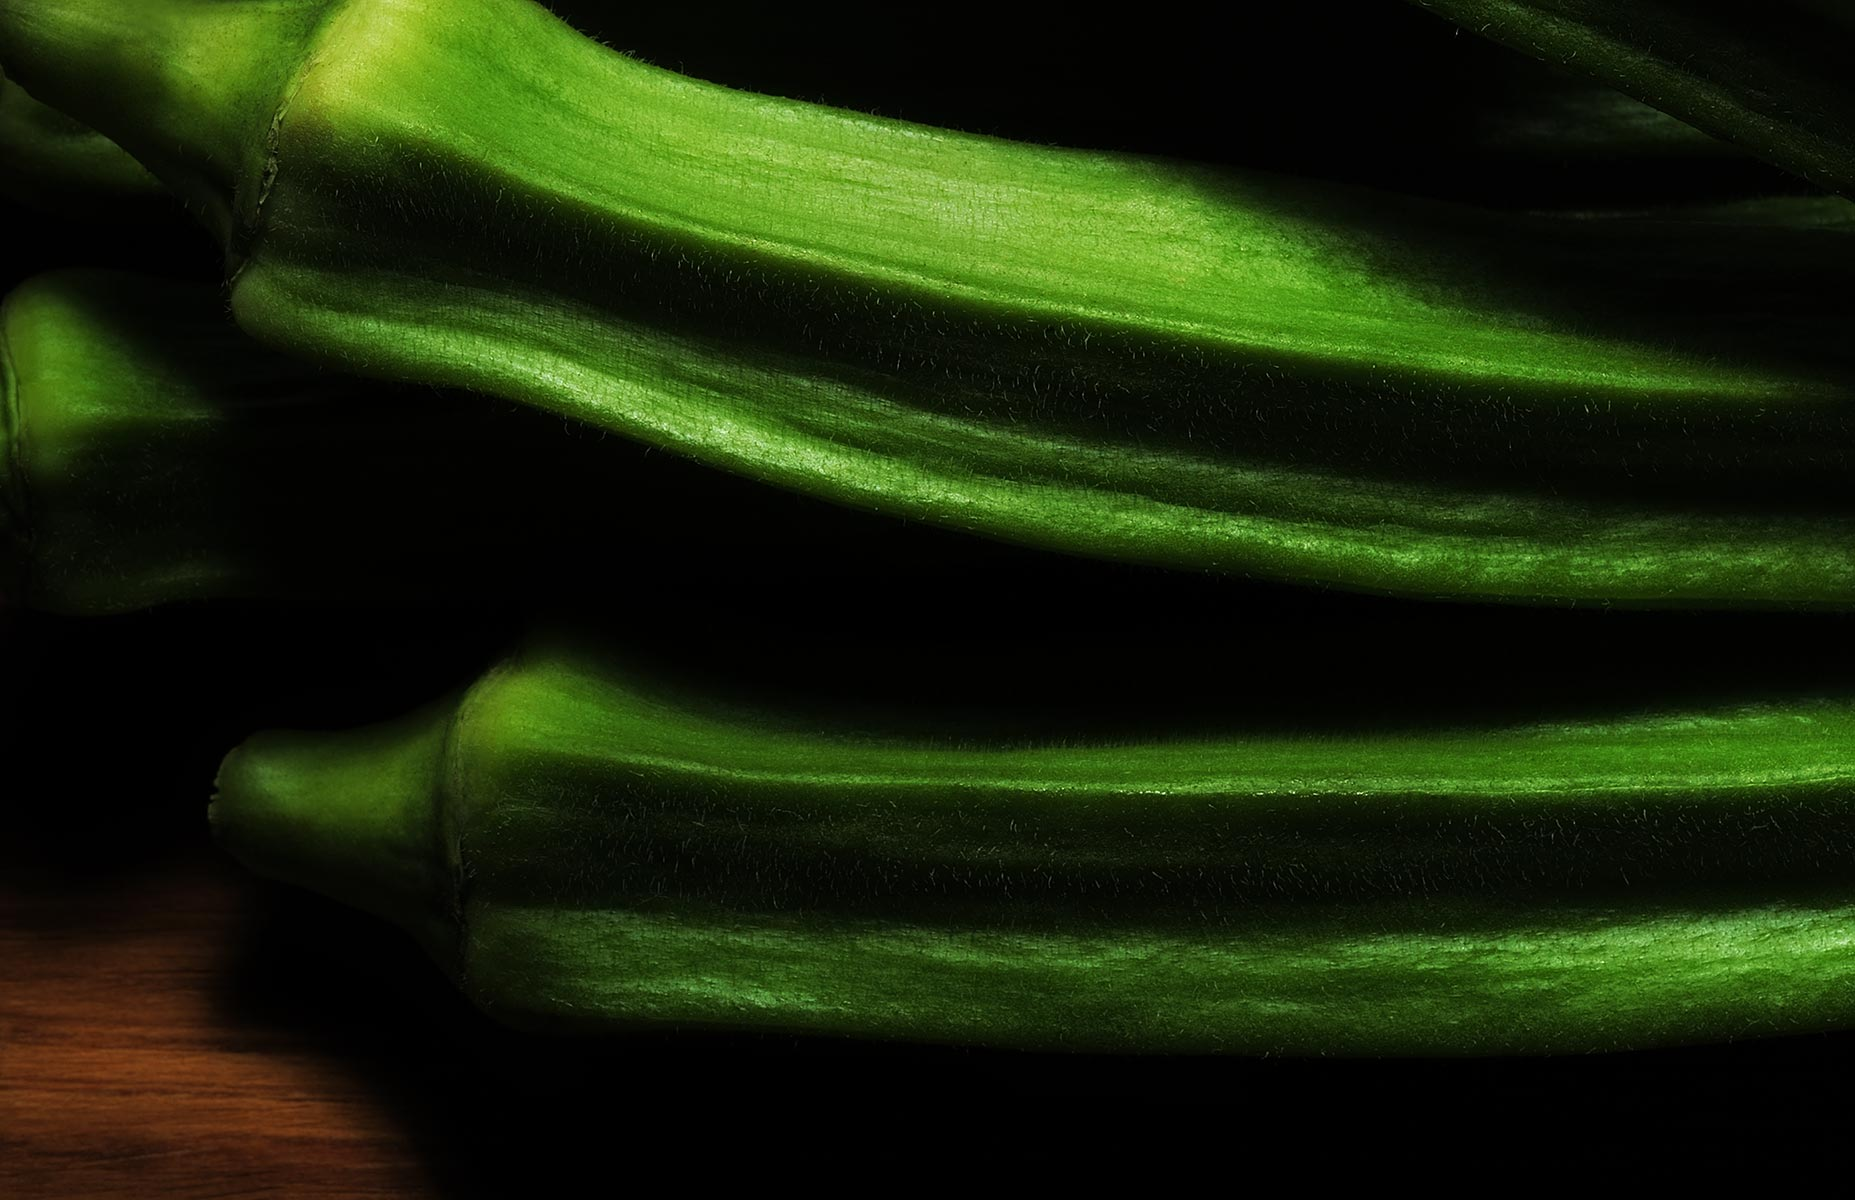 Extreme close up of just picked okra on a wood background. The camera angle is at 45º and the image is cropped in a landscape orientation. The late day light accentuates the highly saturated green of the okra in a very dramatic fashion.